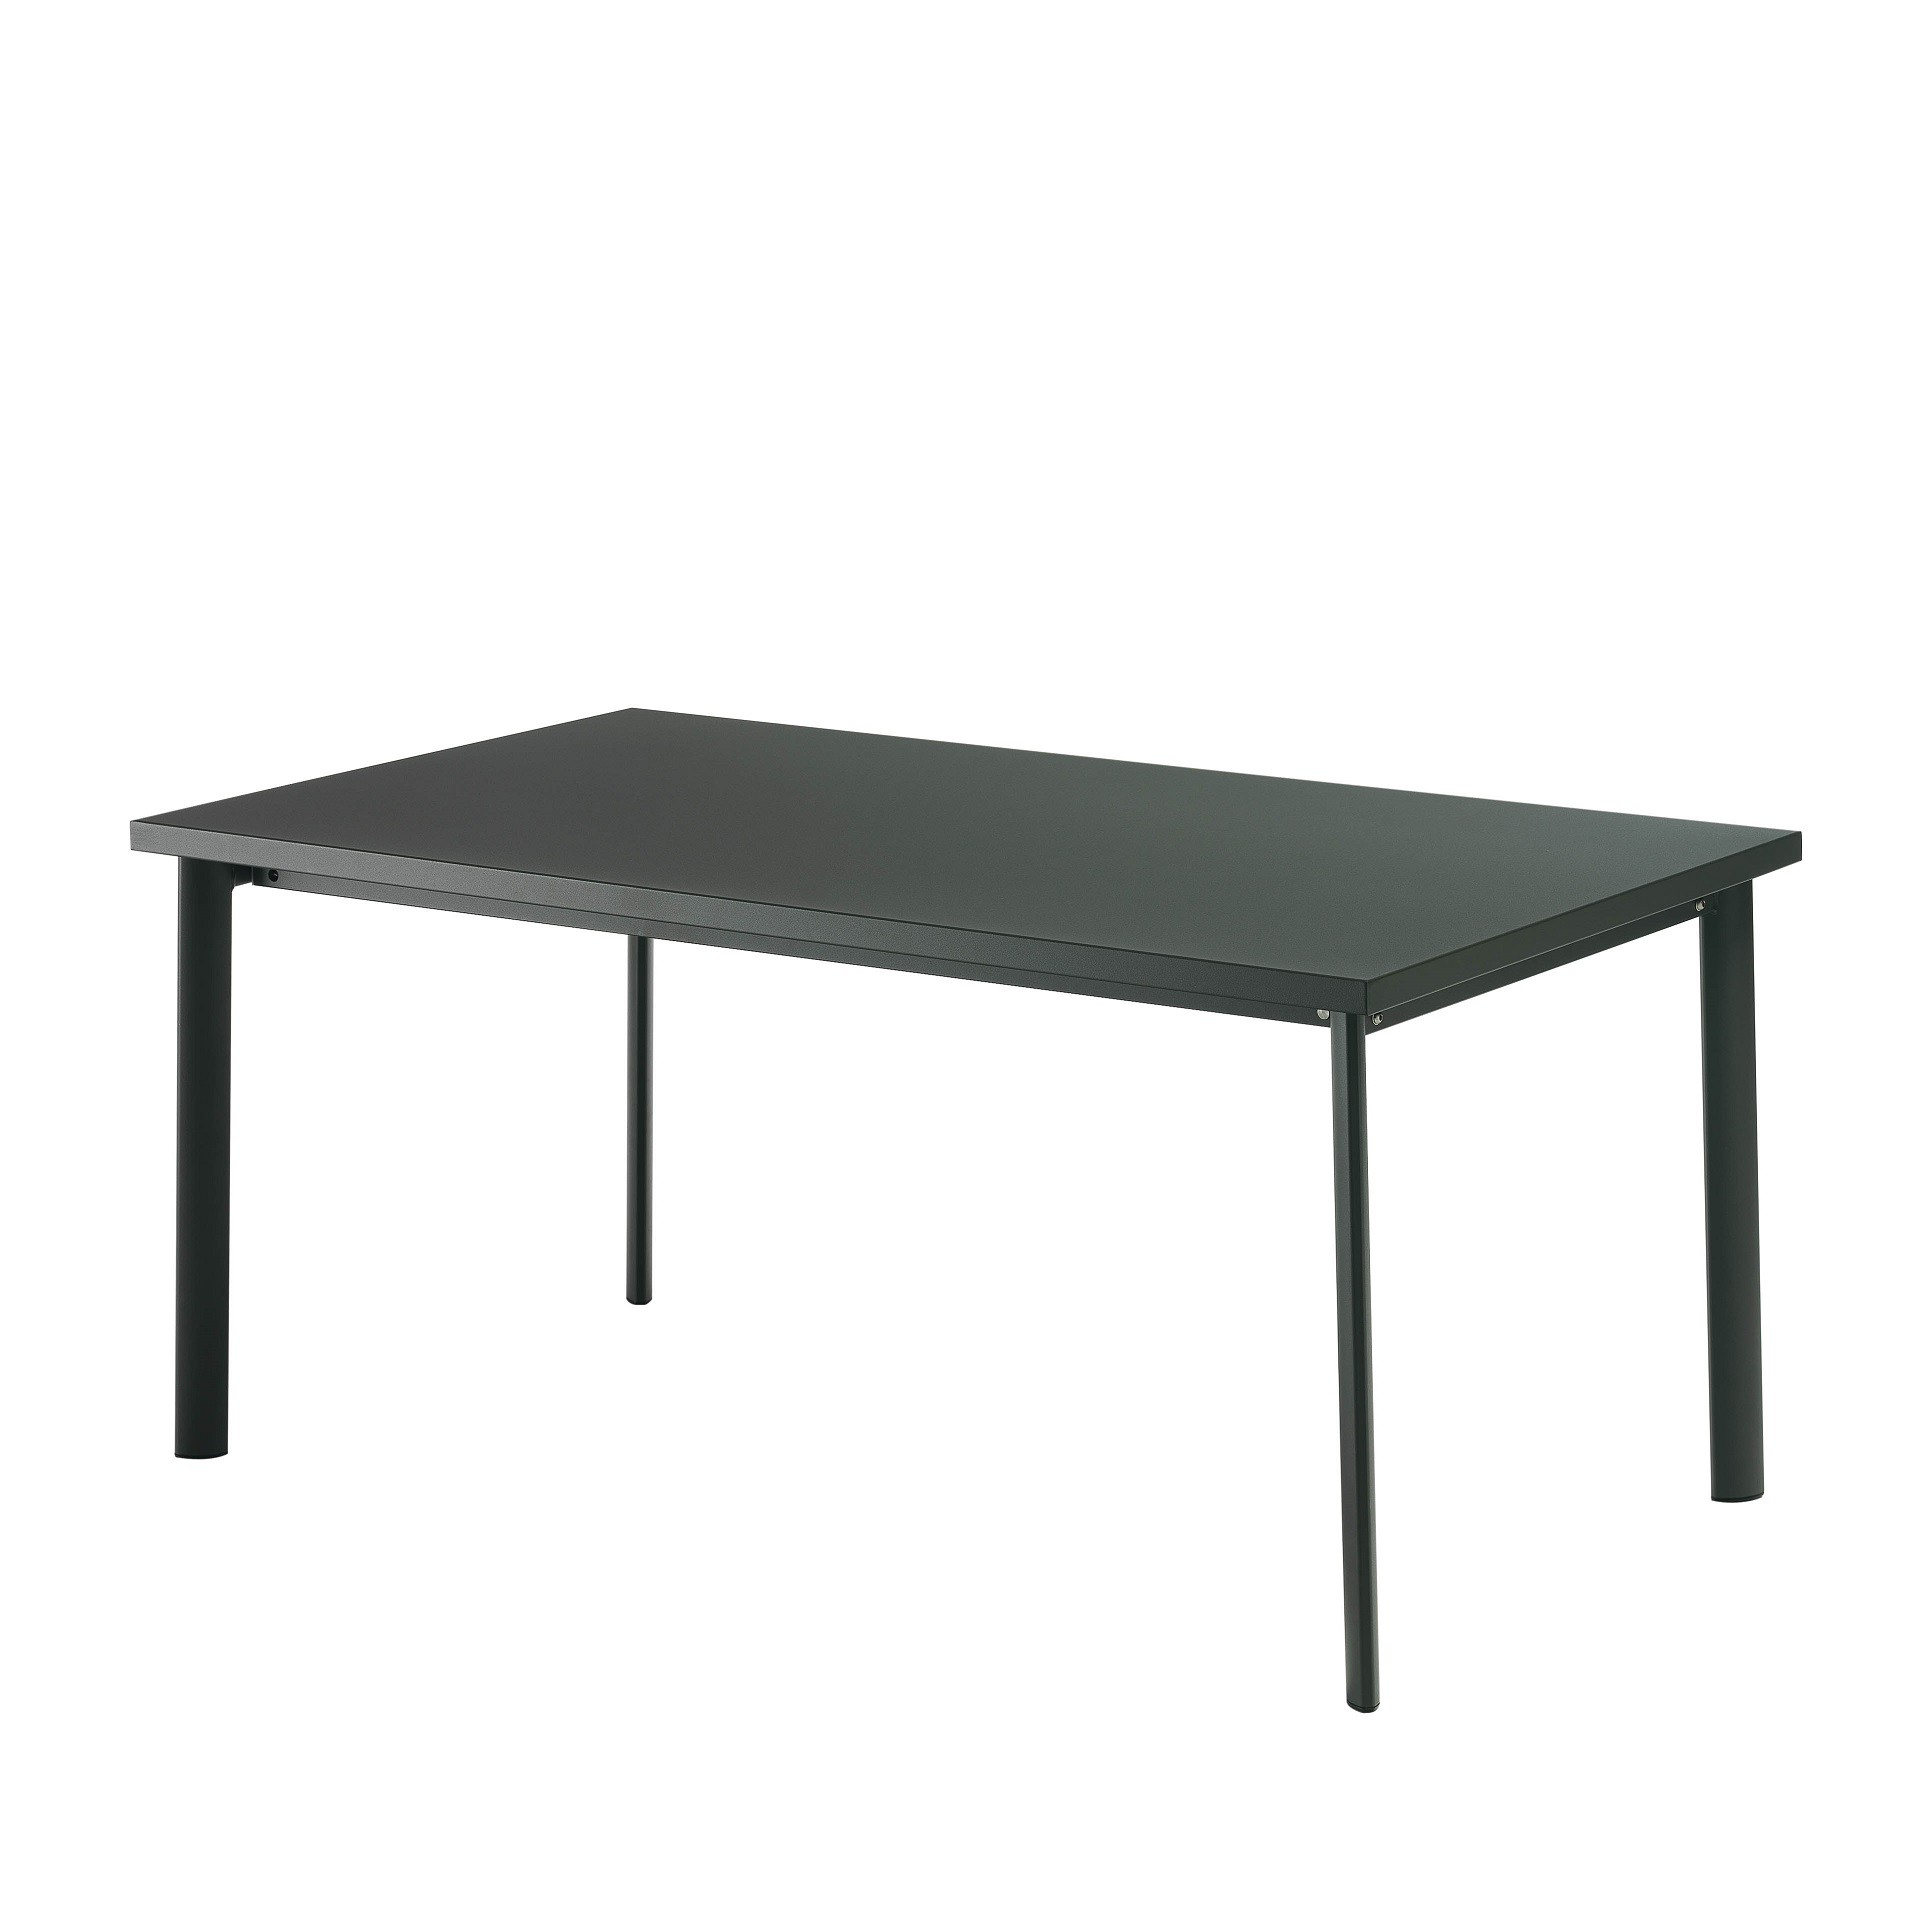 Table Rectangulaire Jardin de Star Star Y6vbf7gy